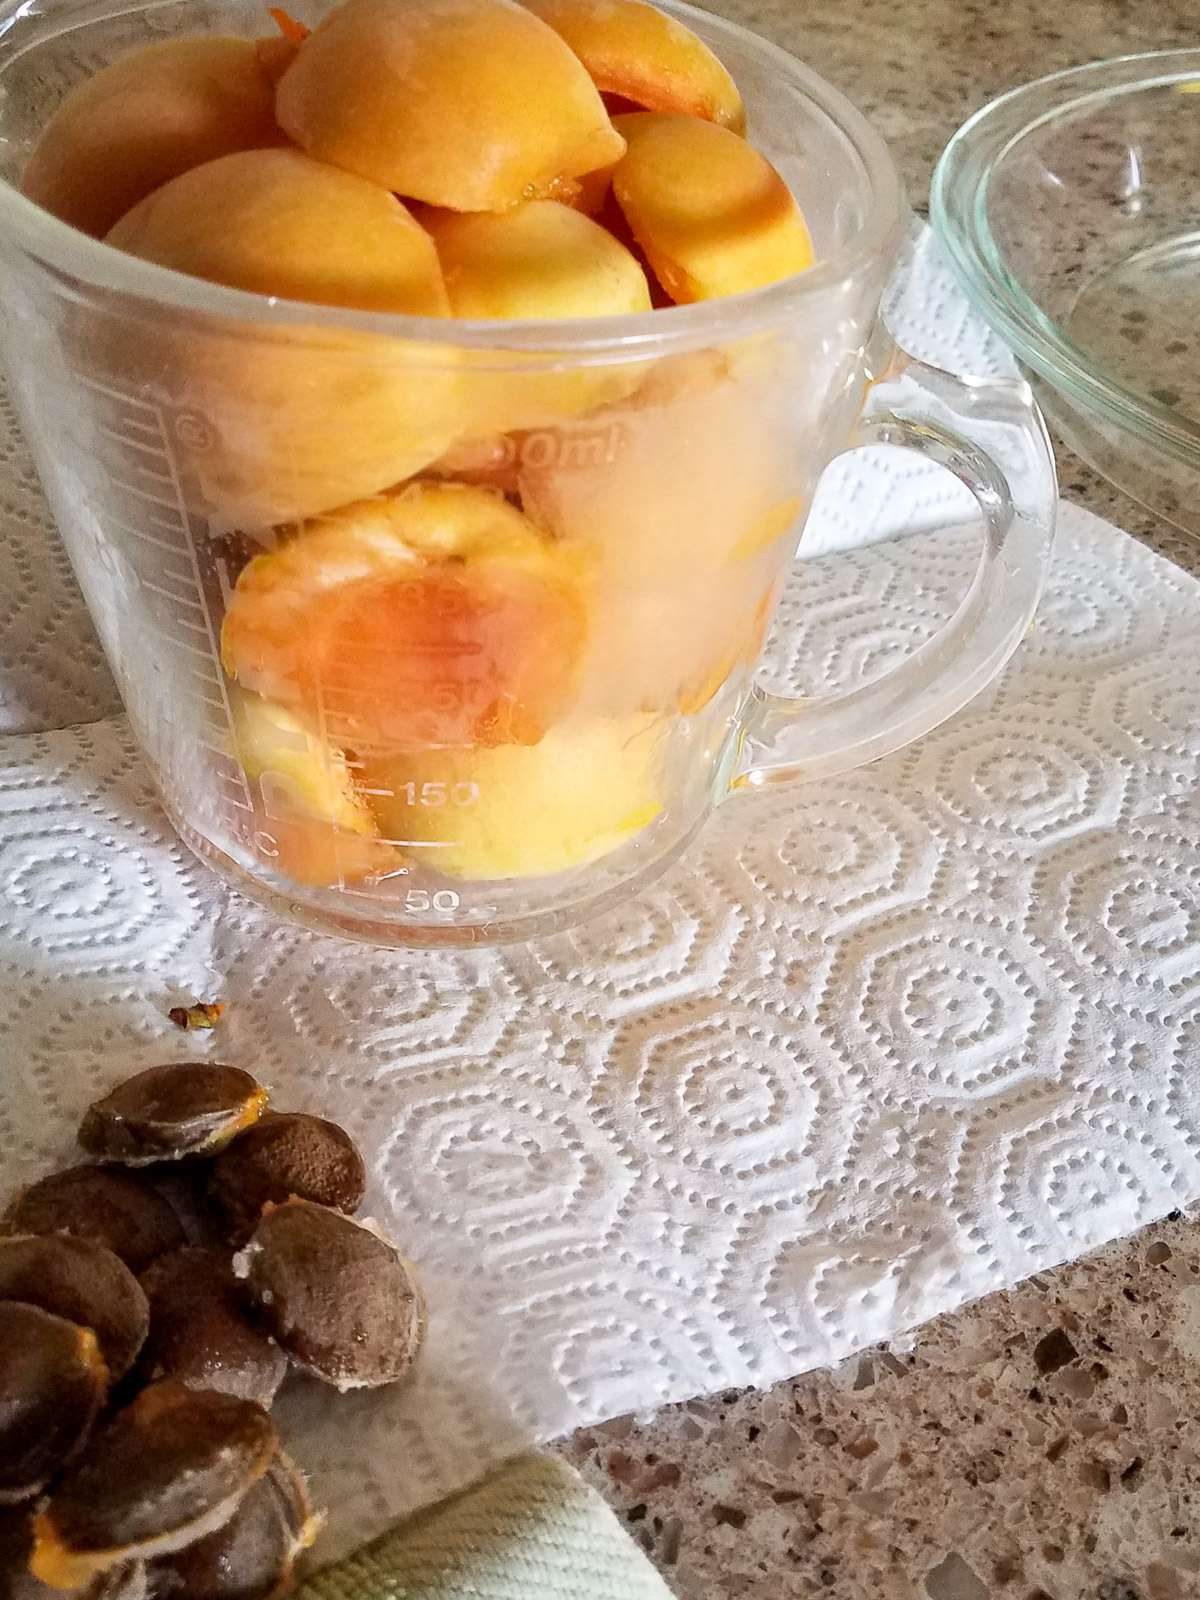 apricot halves being put in a glass measuring cup